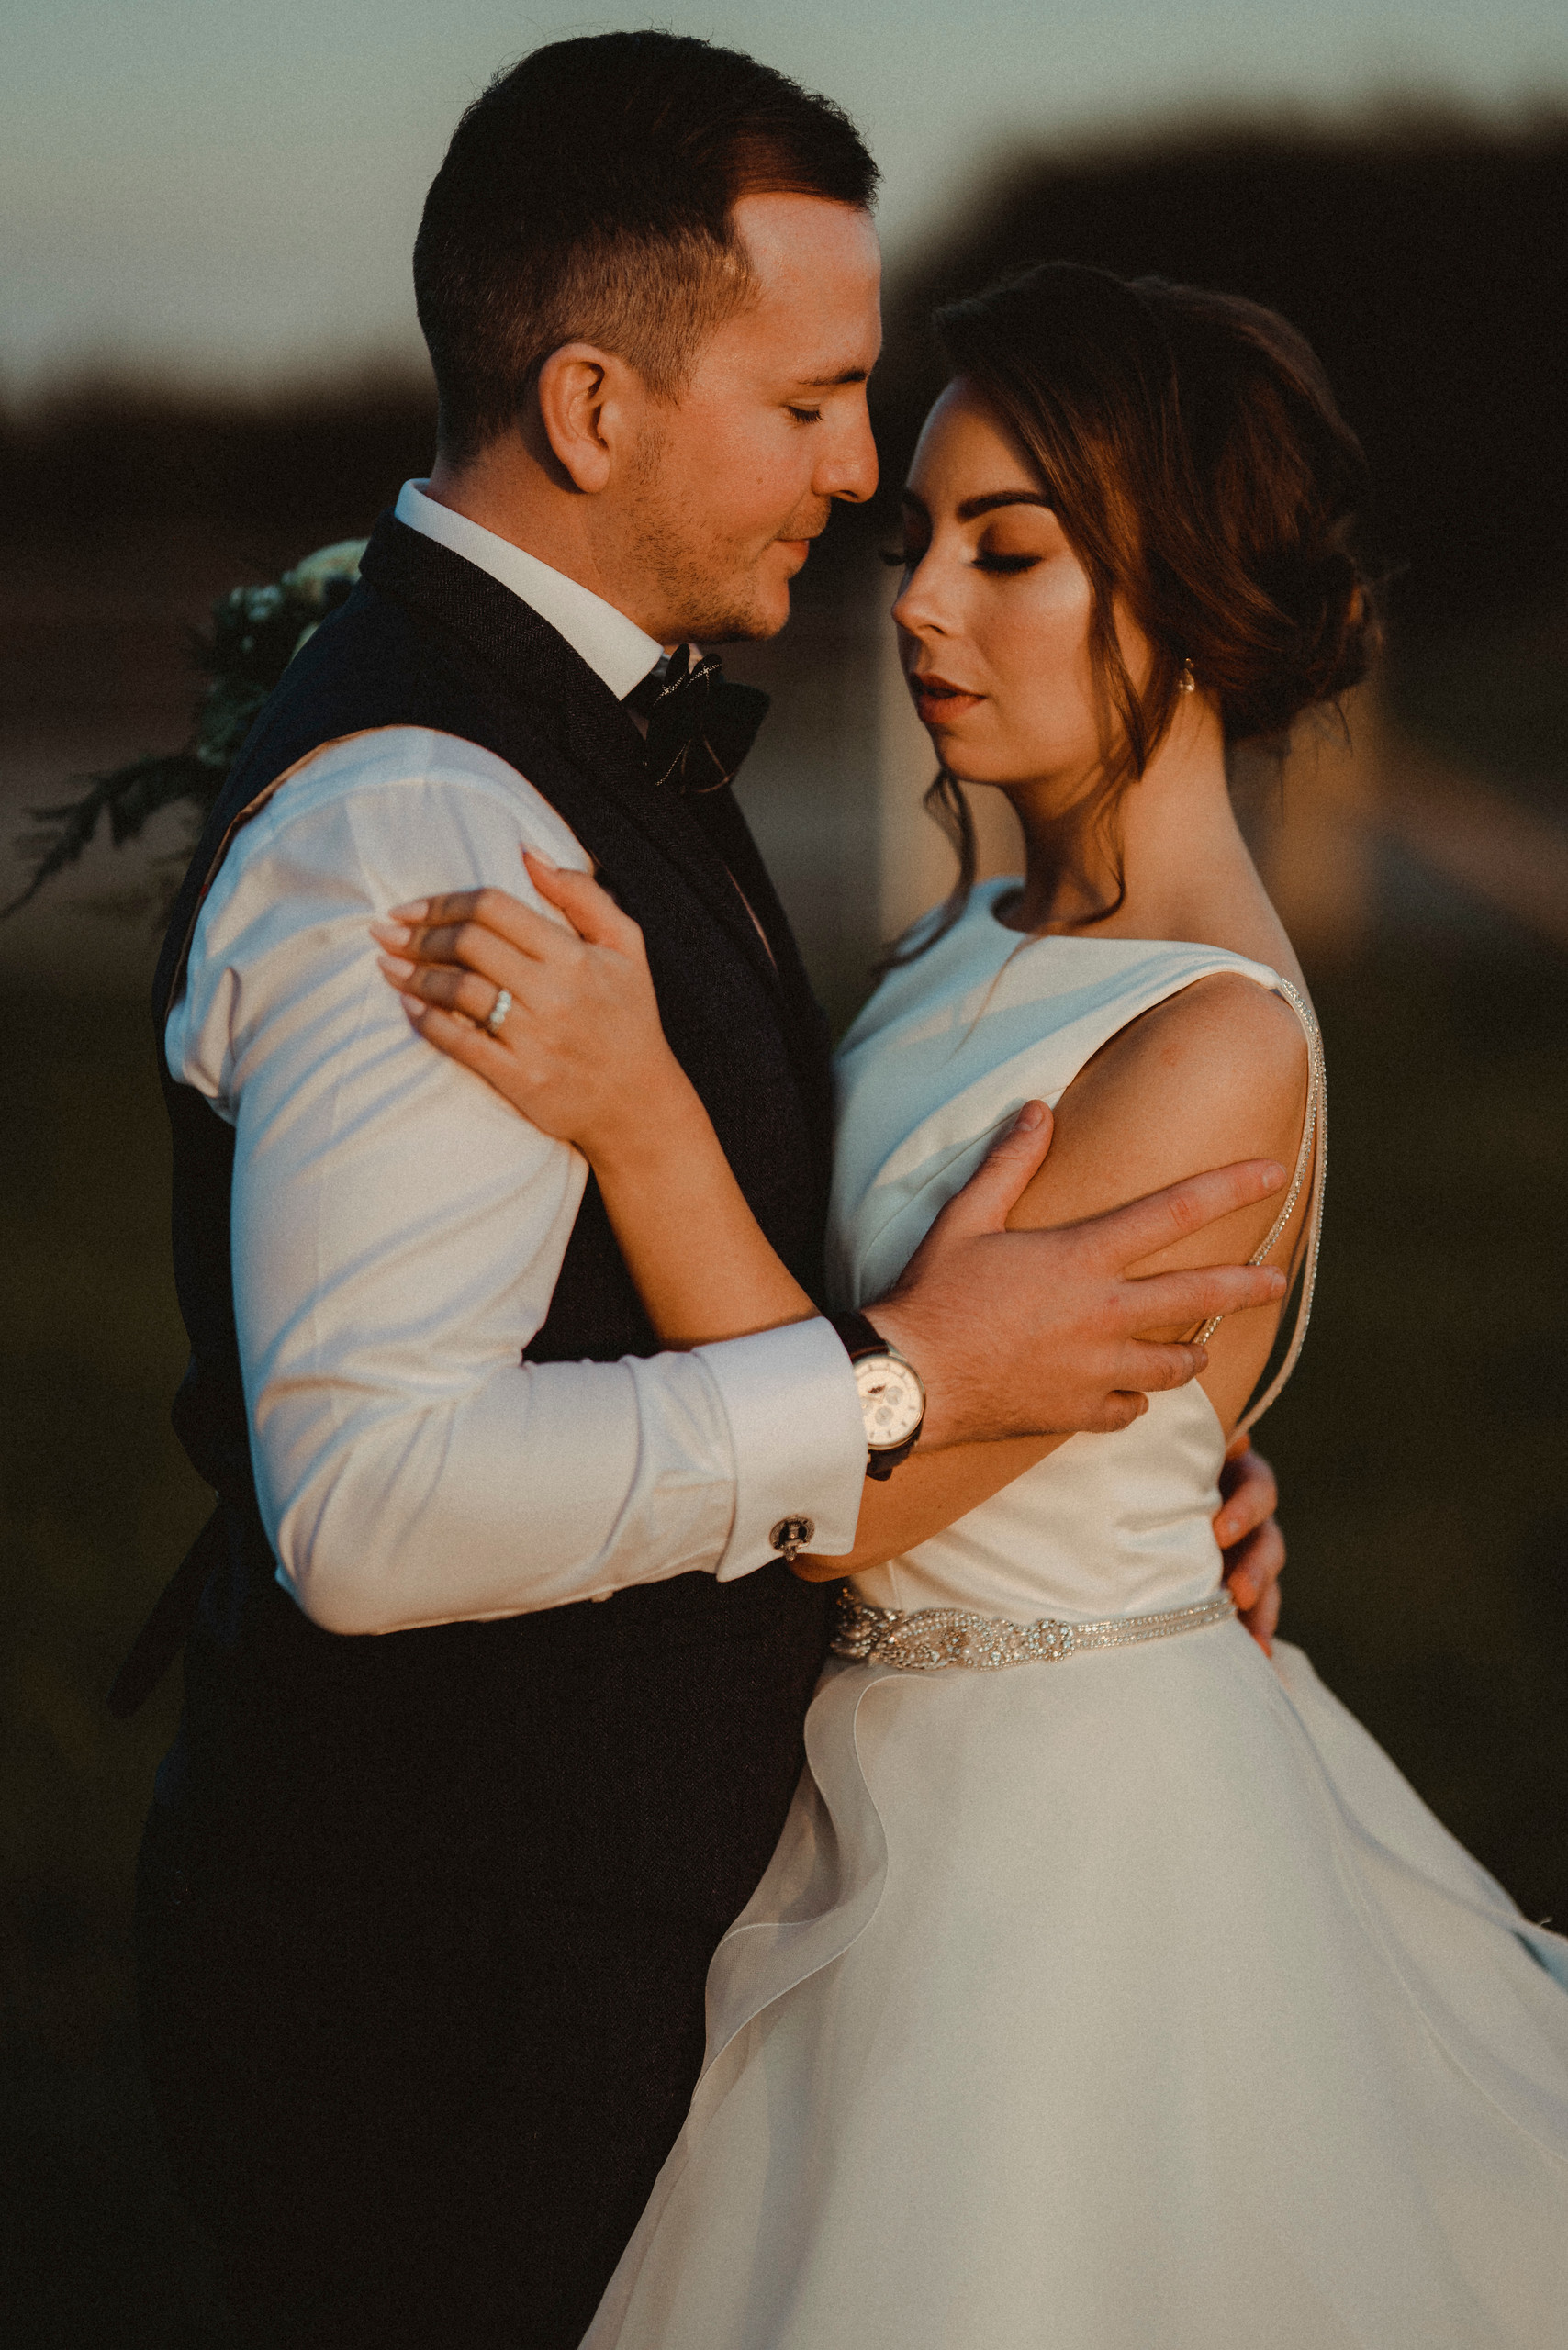 Bride and groom hold each other close